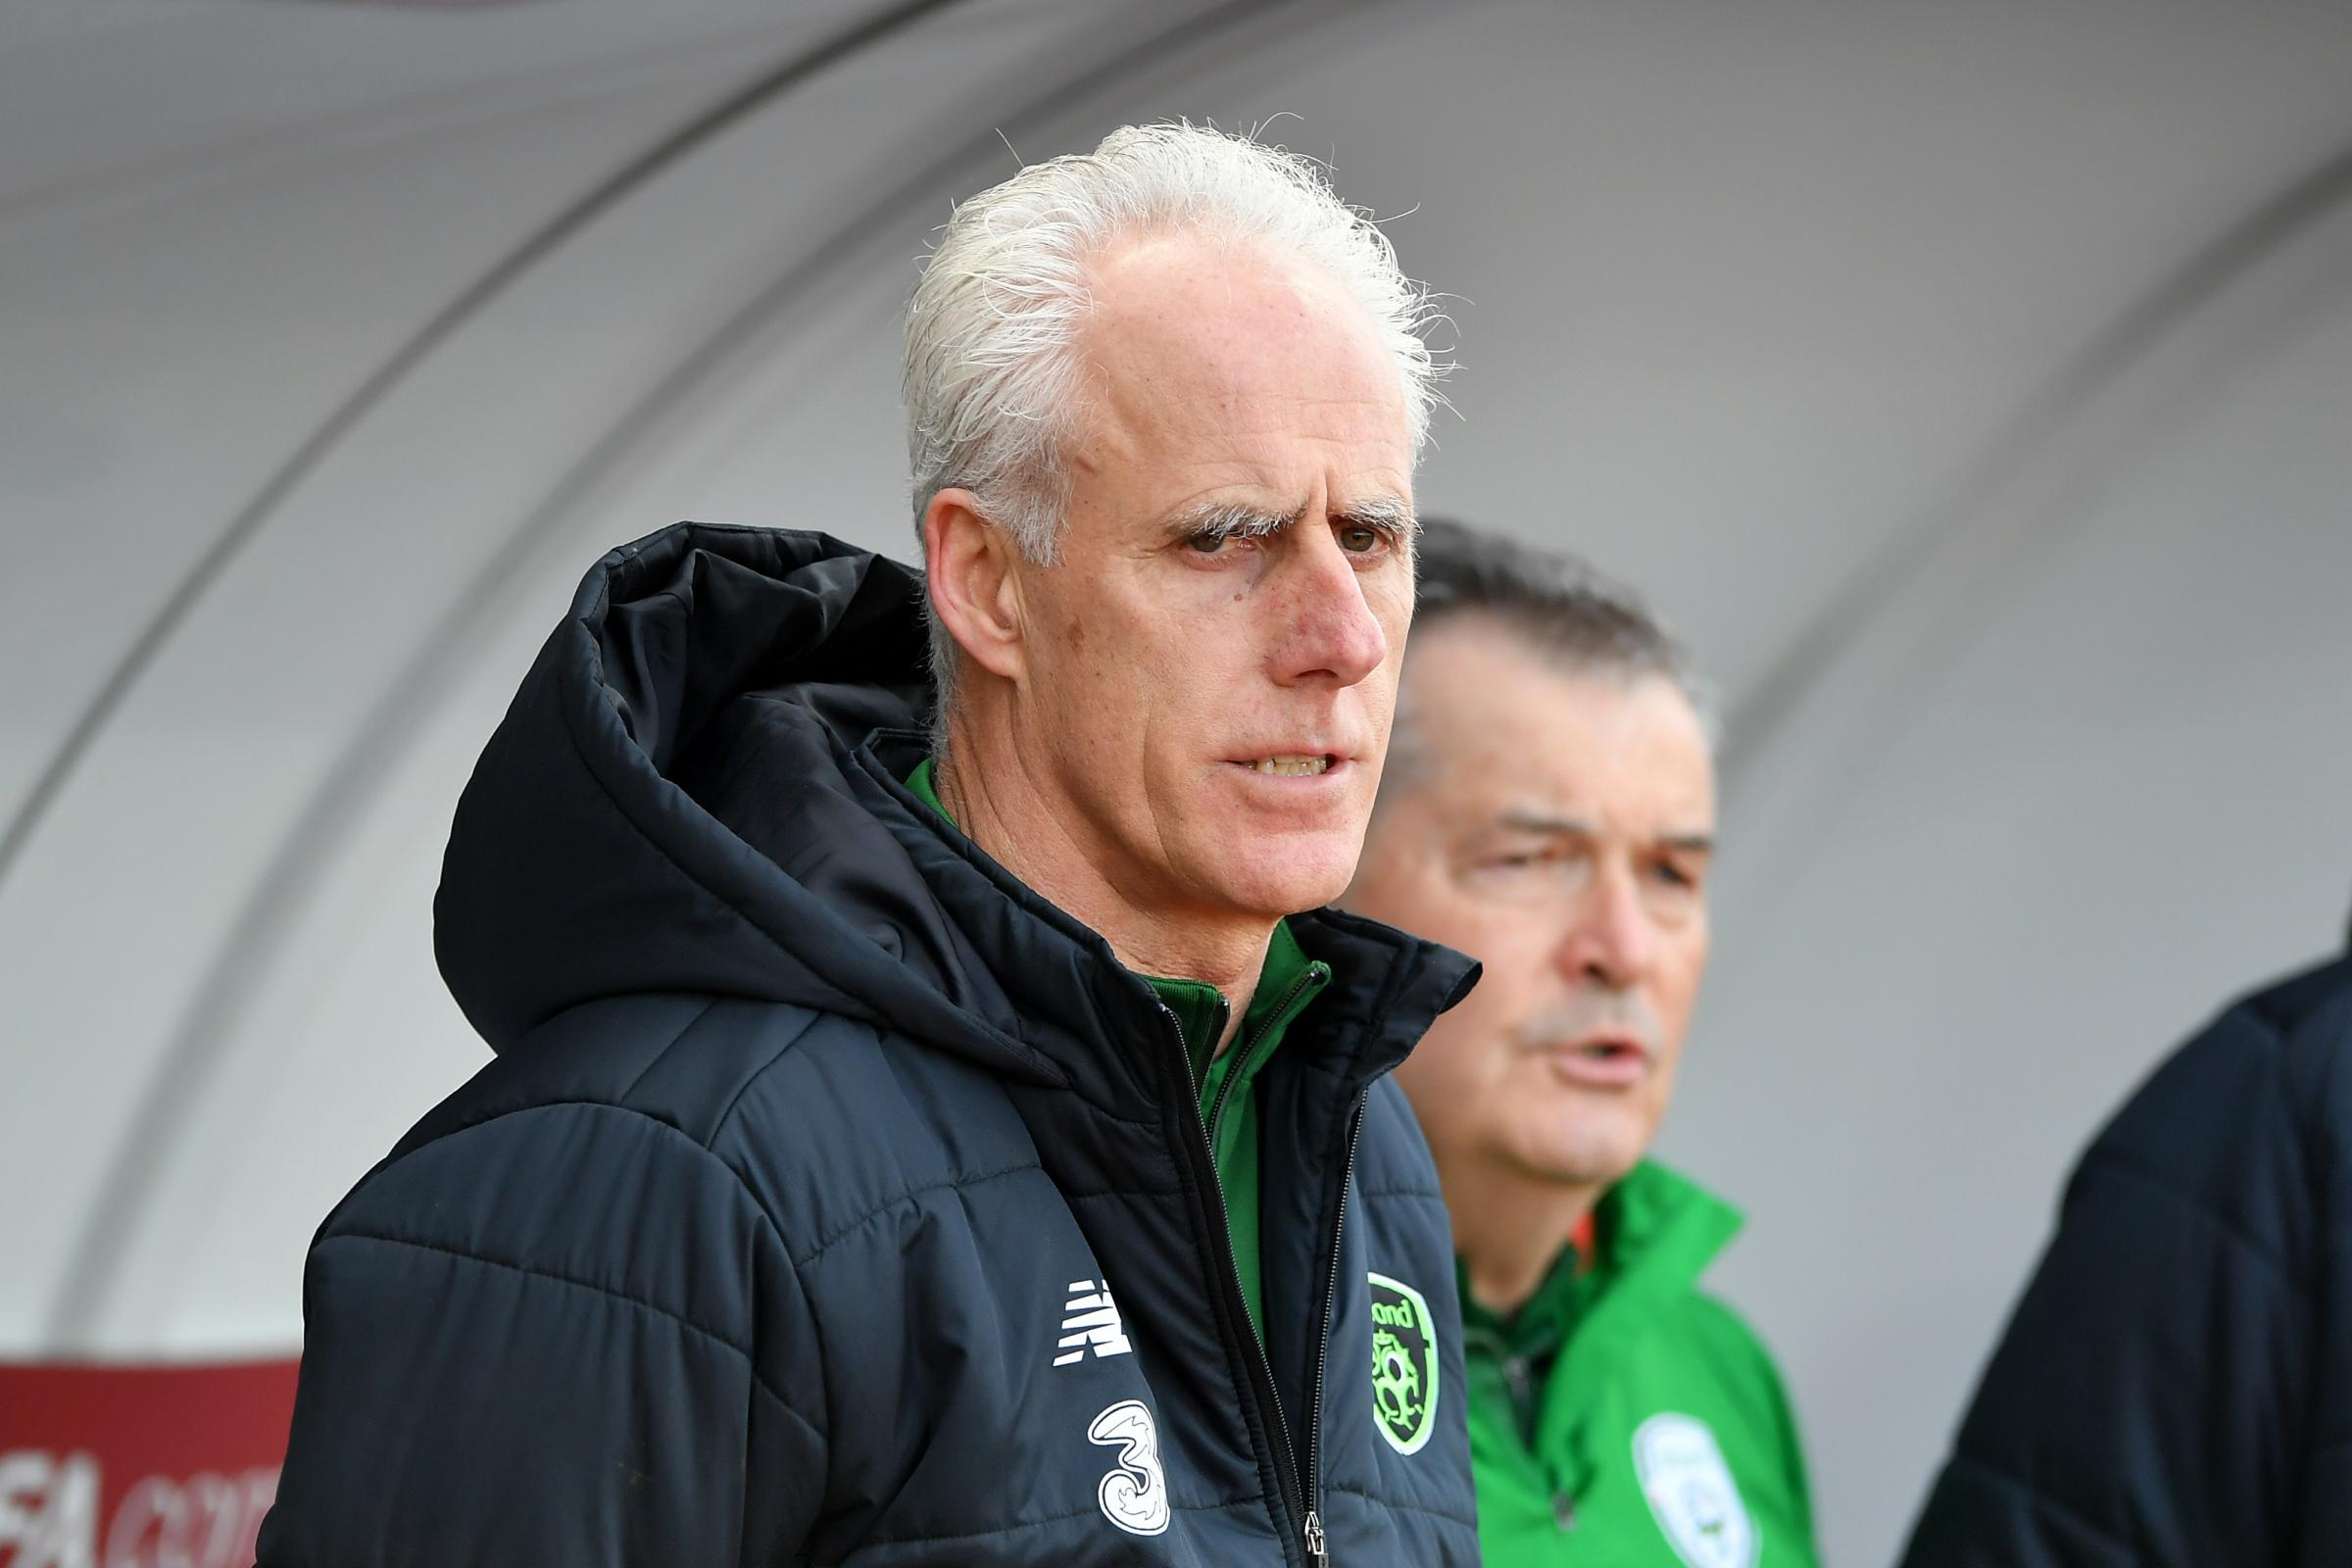 Republic of Ireland manager Mick McCarthy will settle for victory over Georgia however it comes